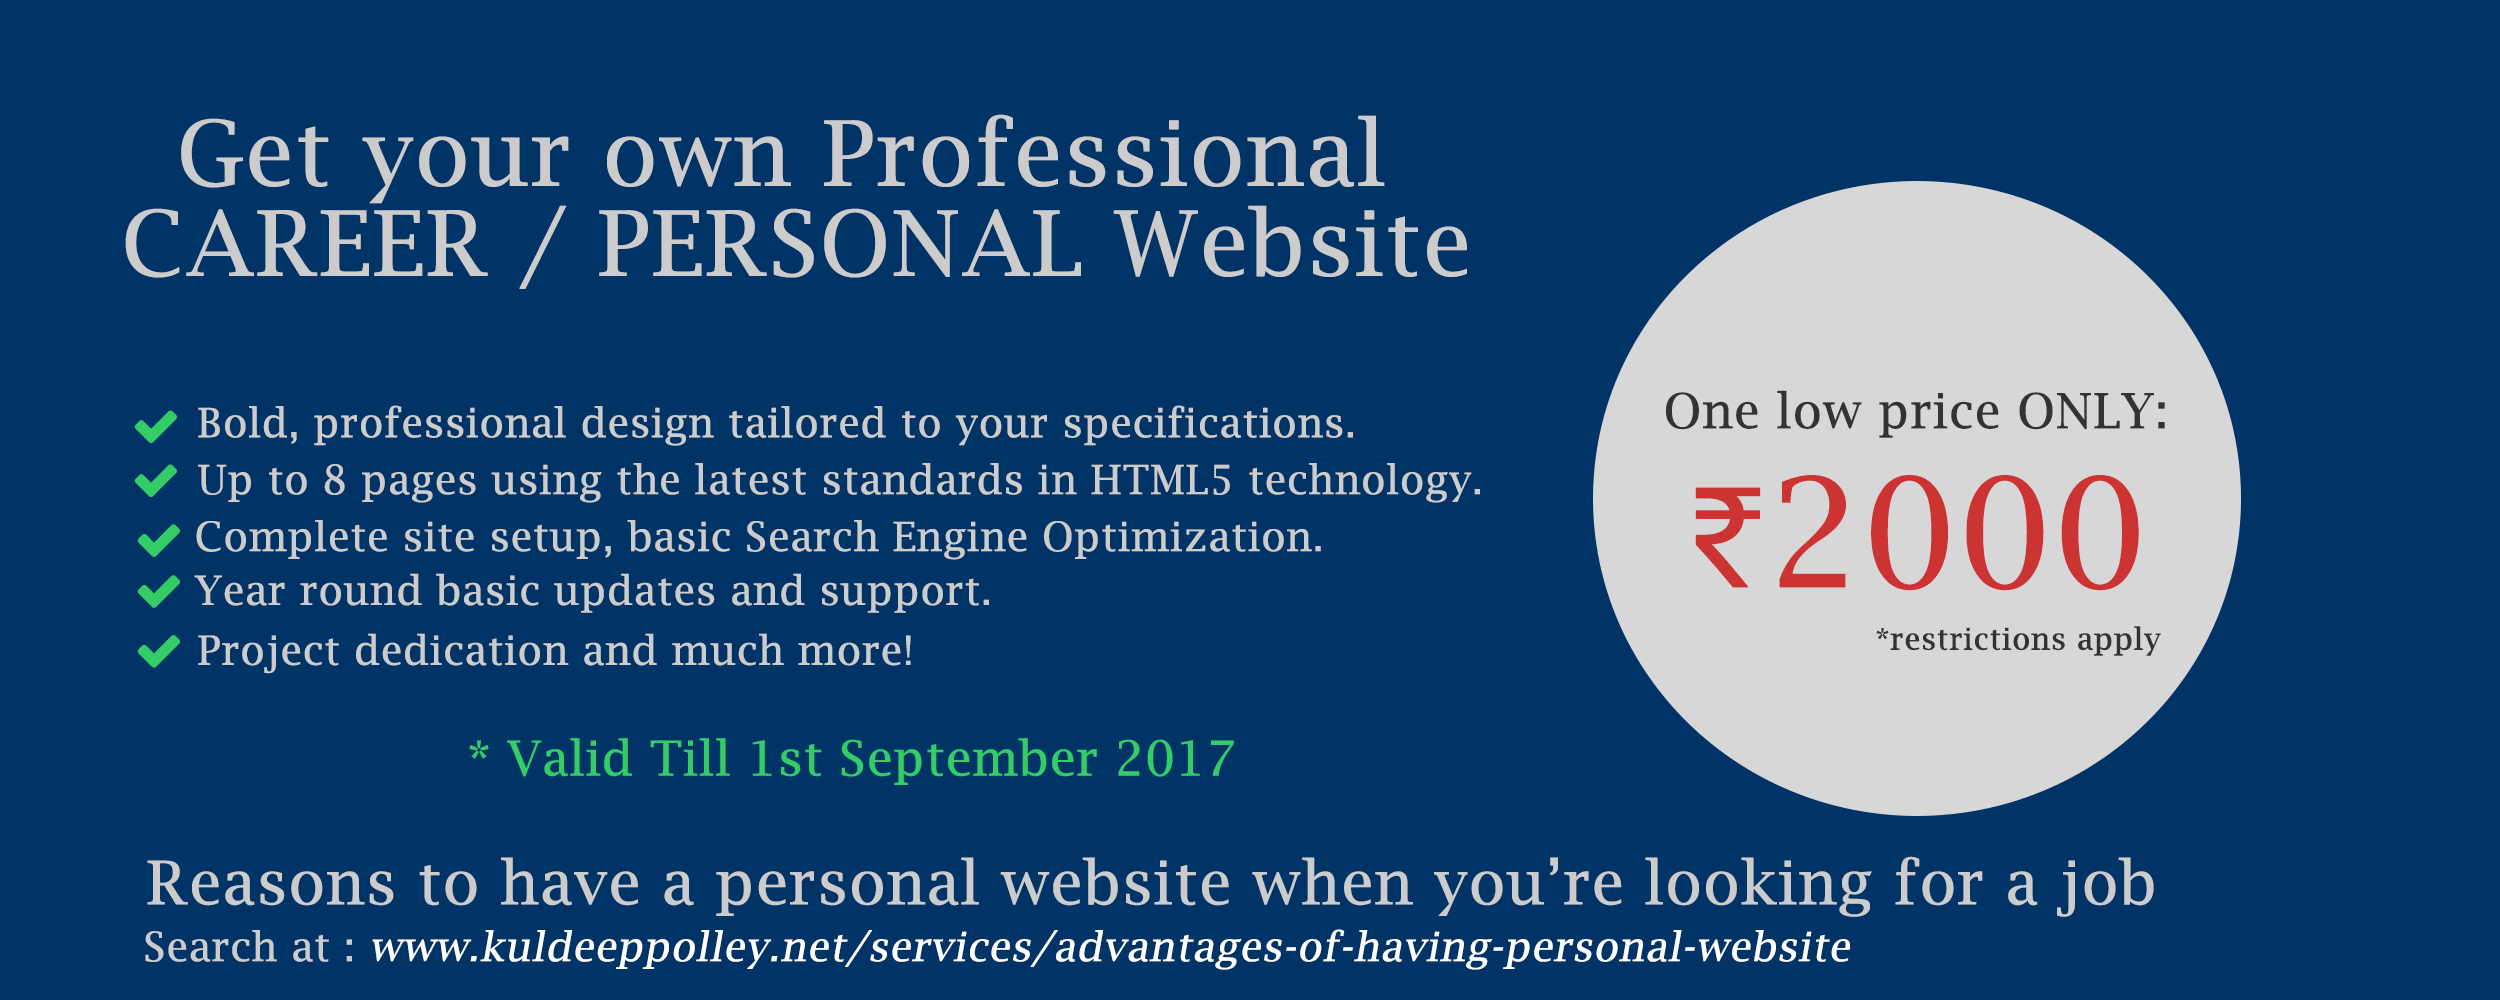 personal website price offer